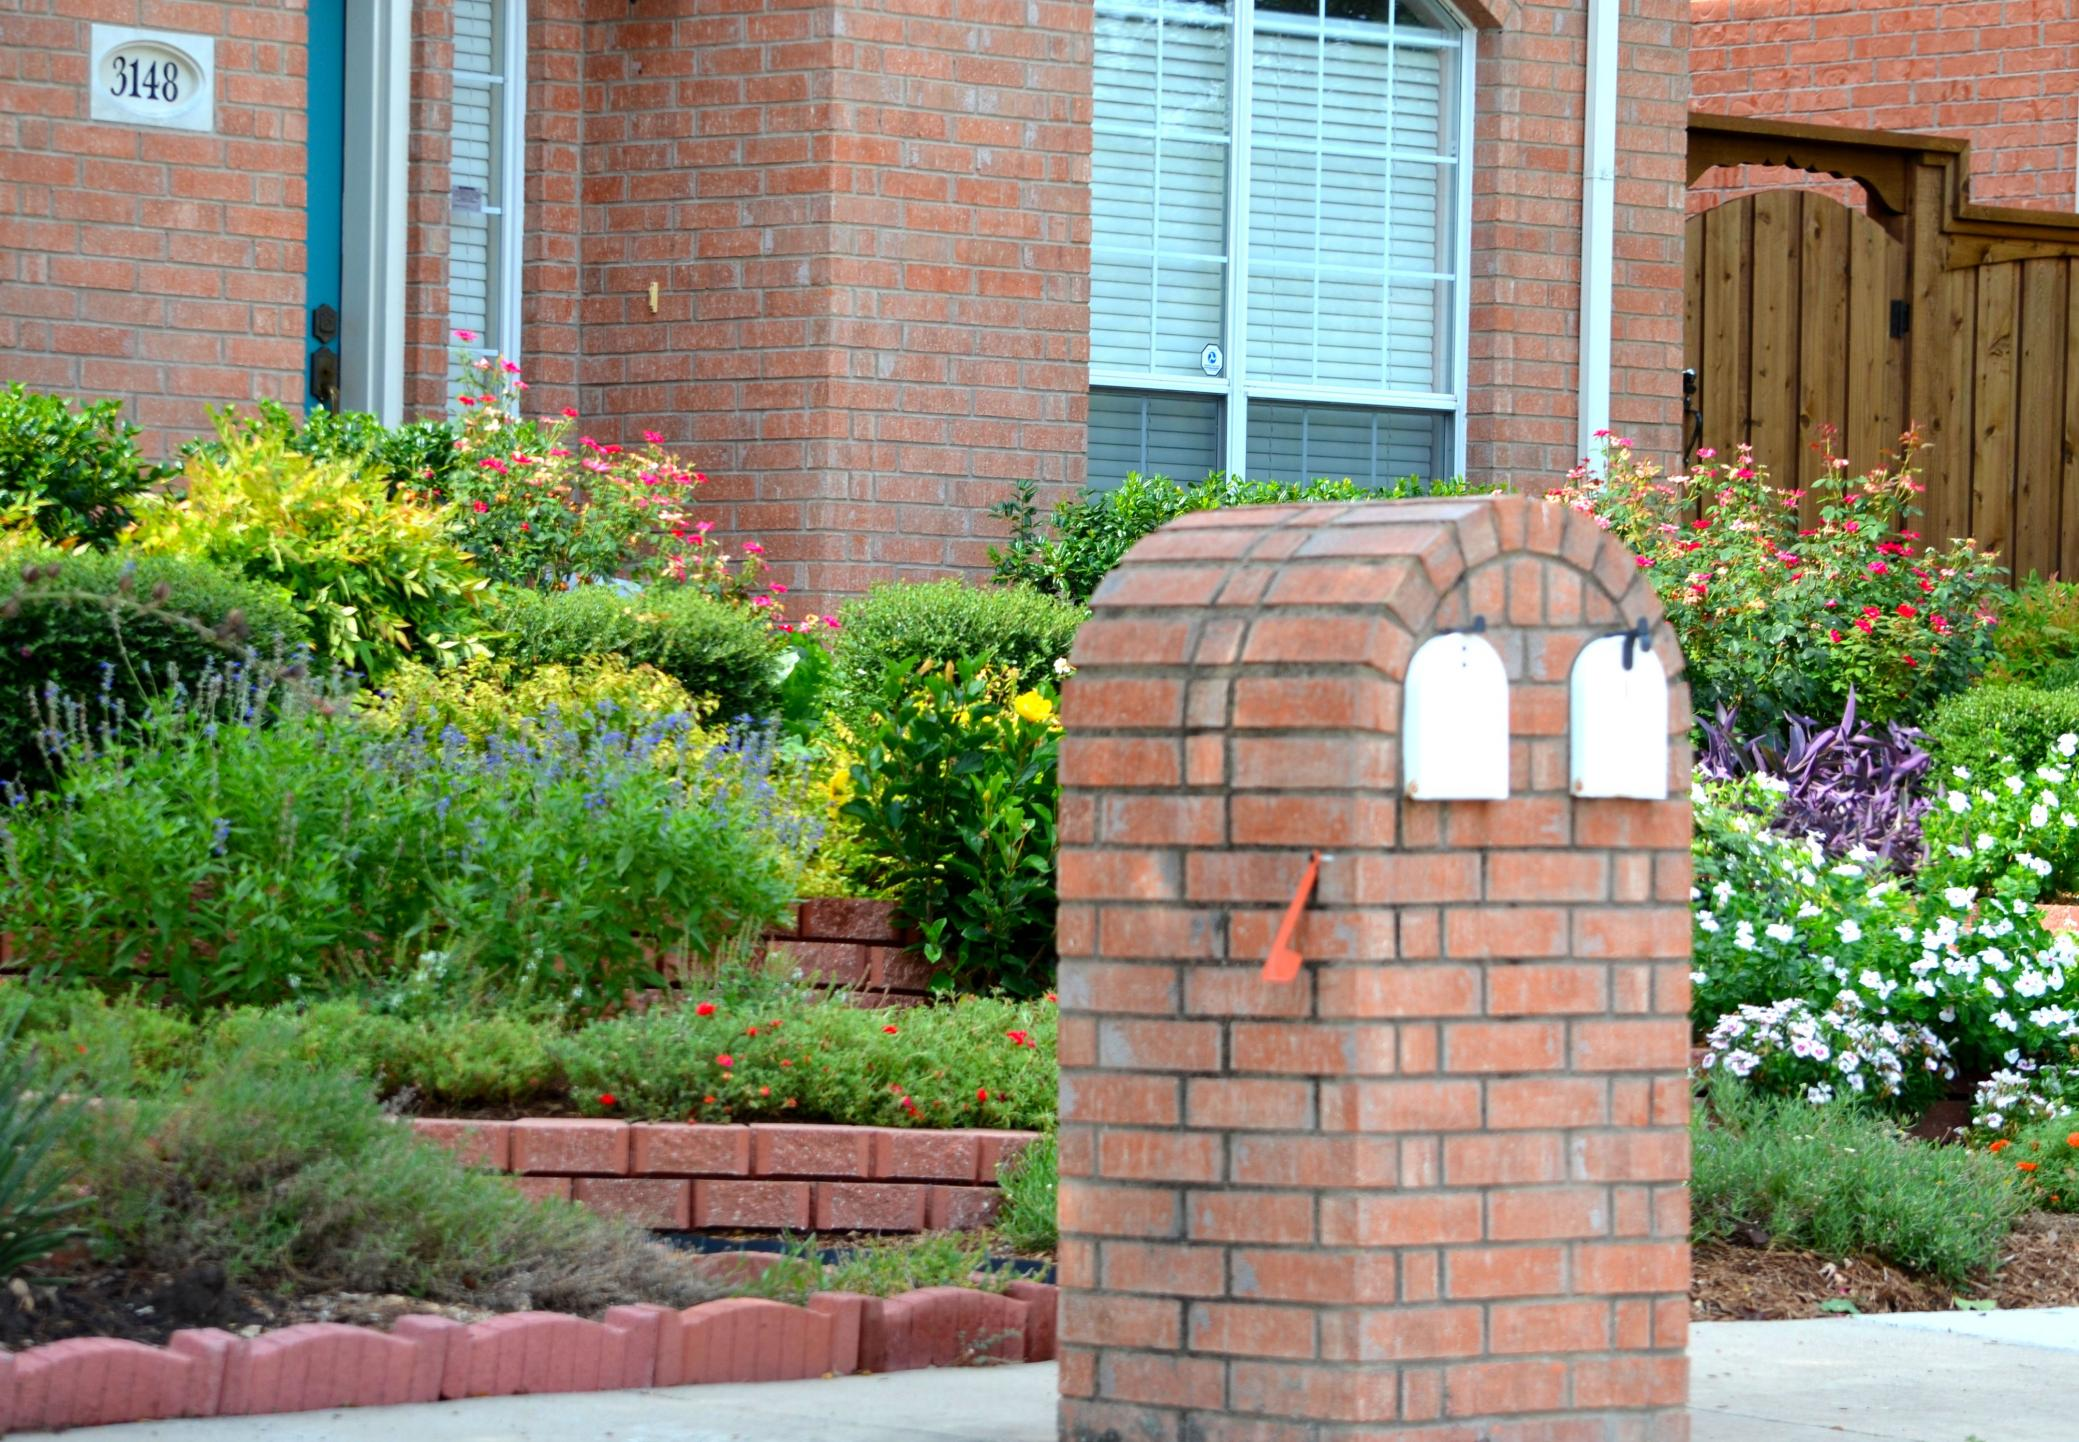 This is a picture of a brick mailboxes.